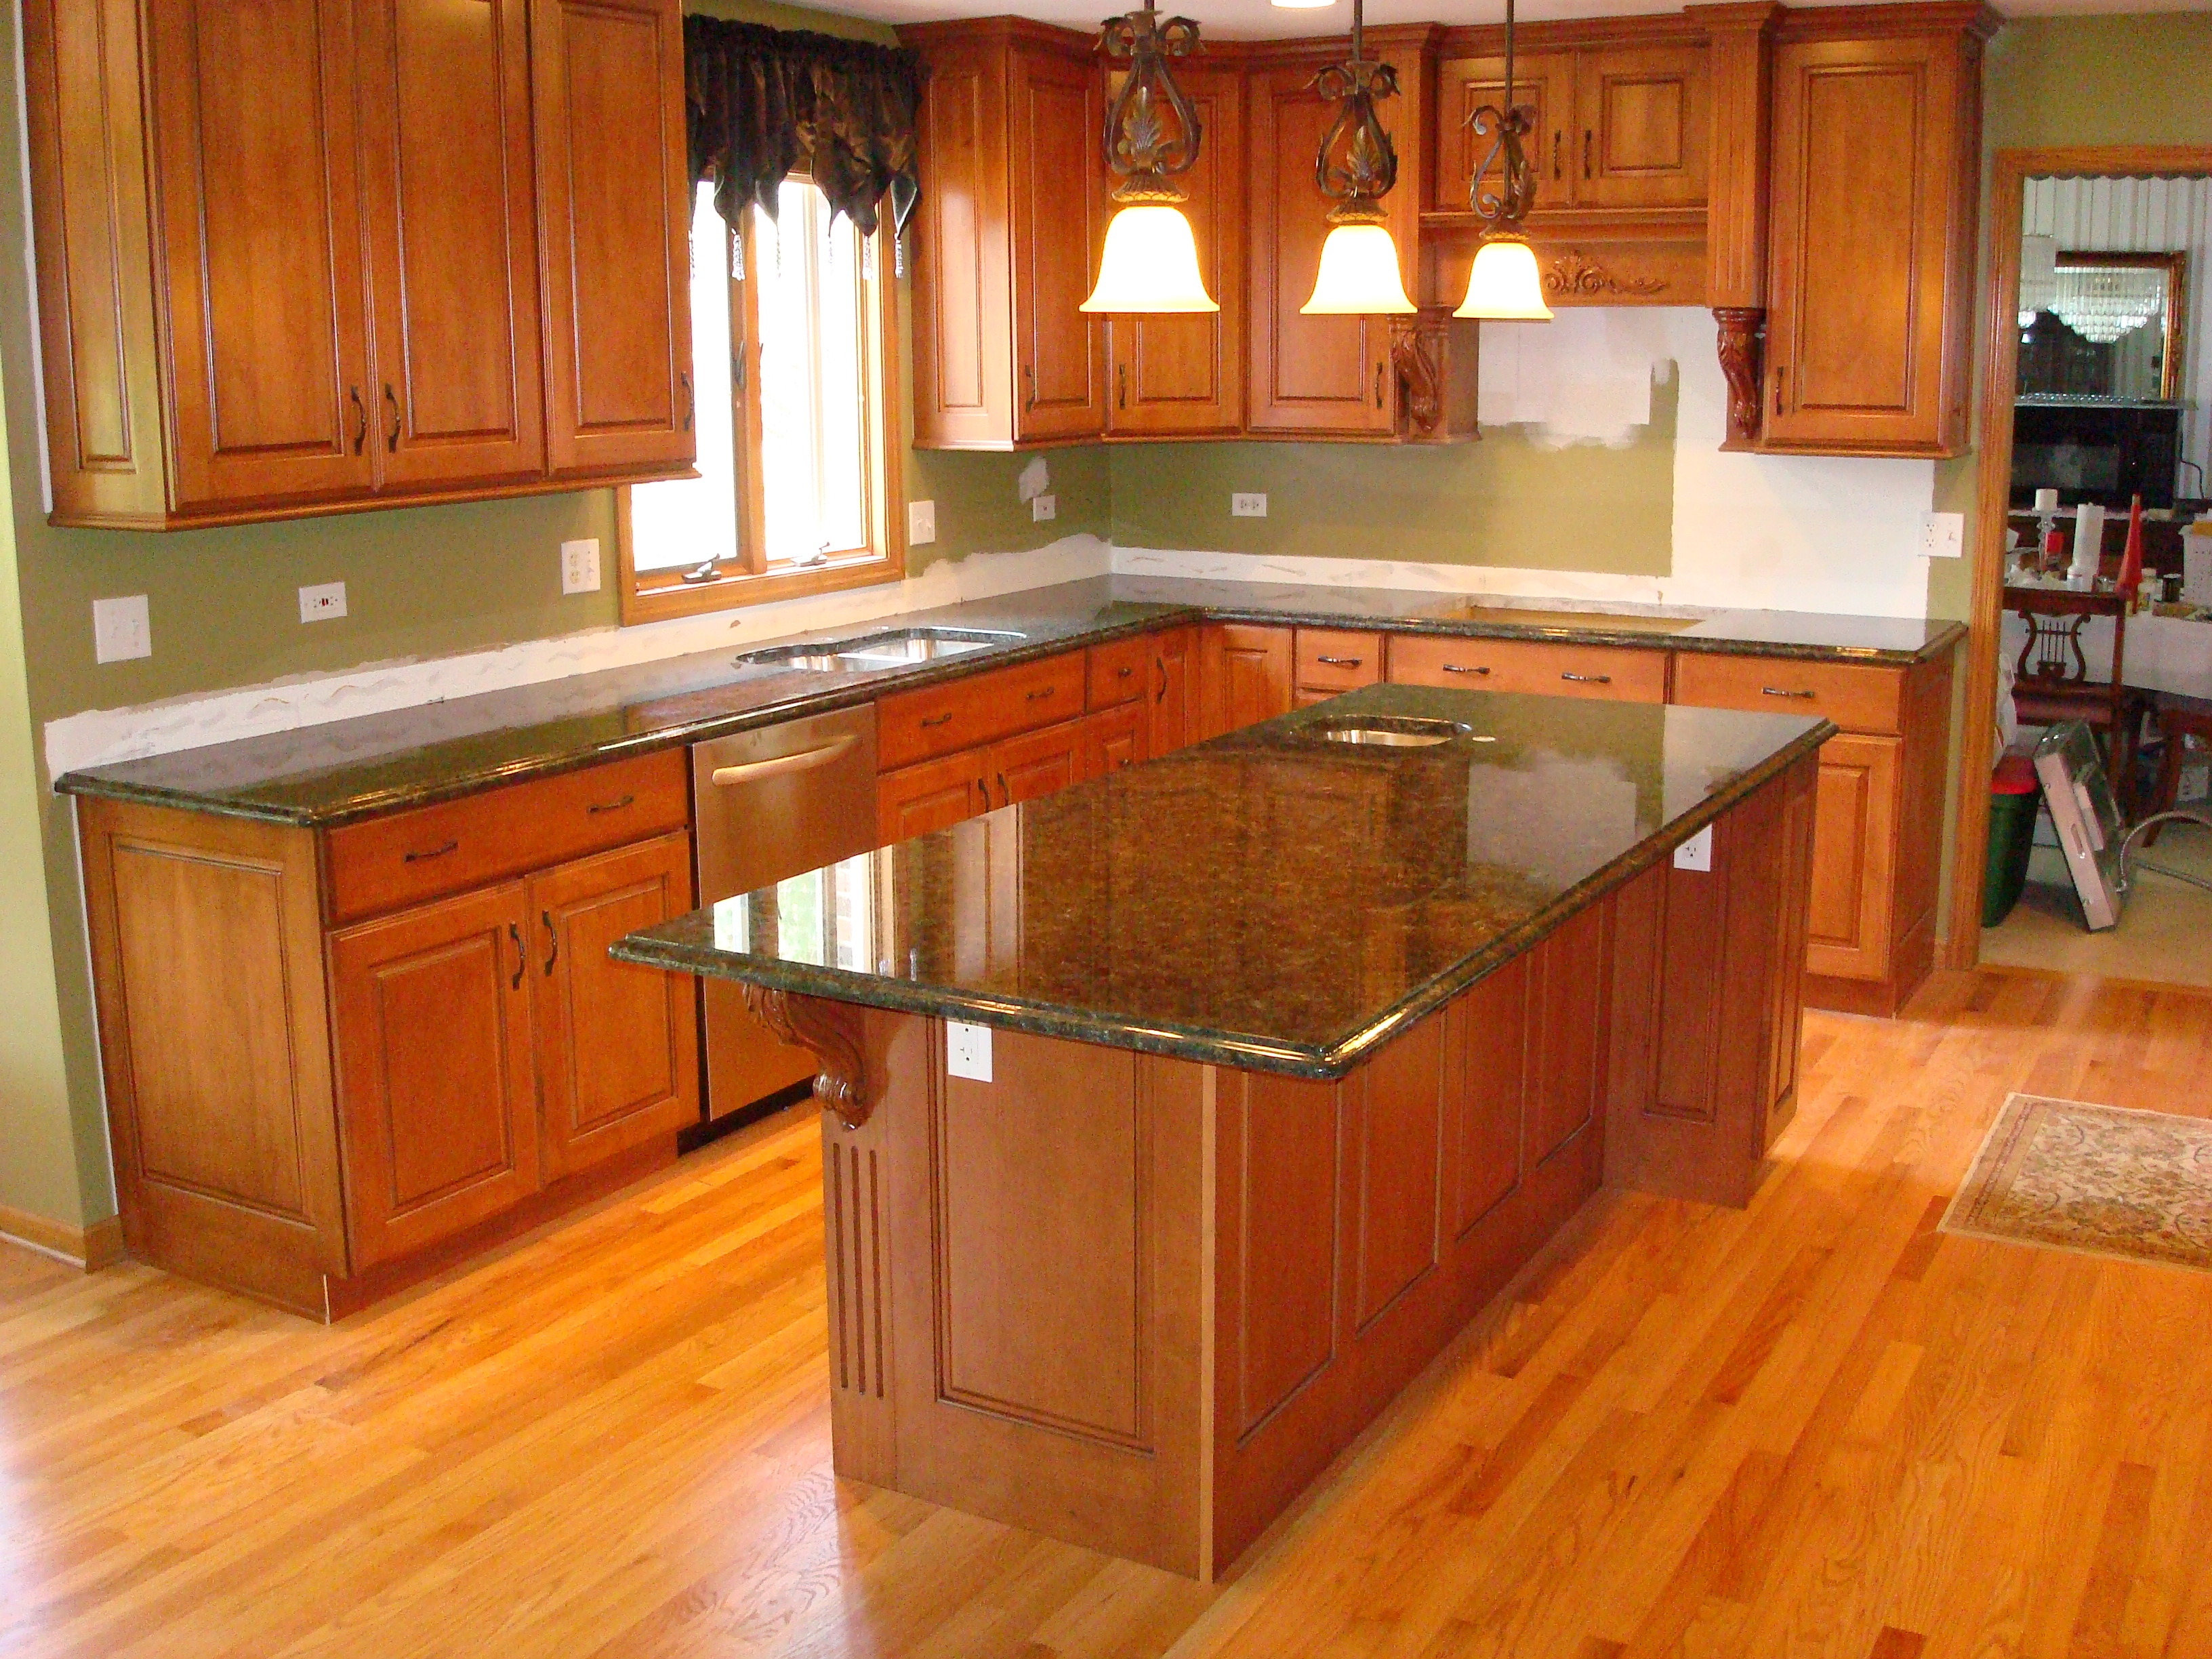 Kitchen Decorating With Green Countertops